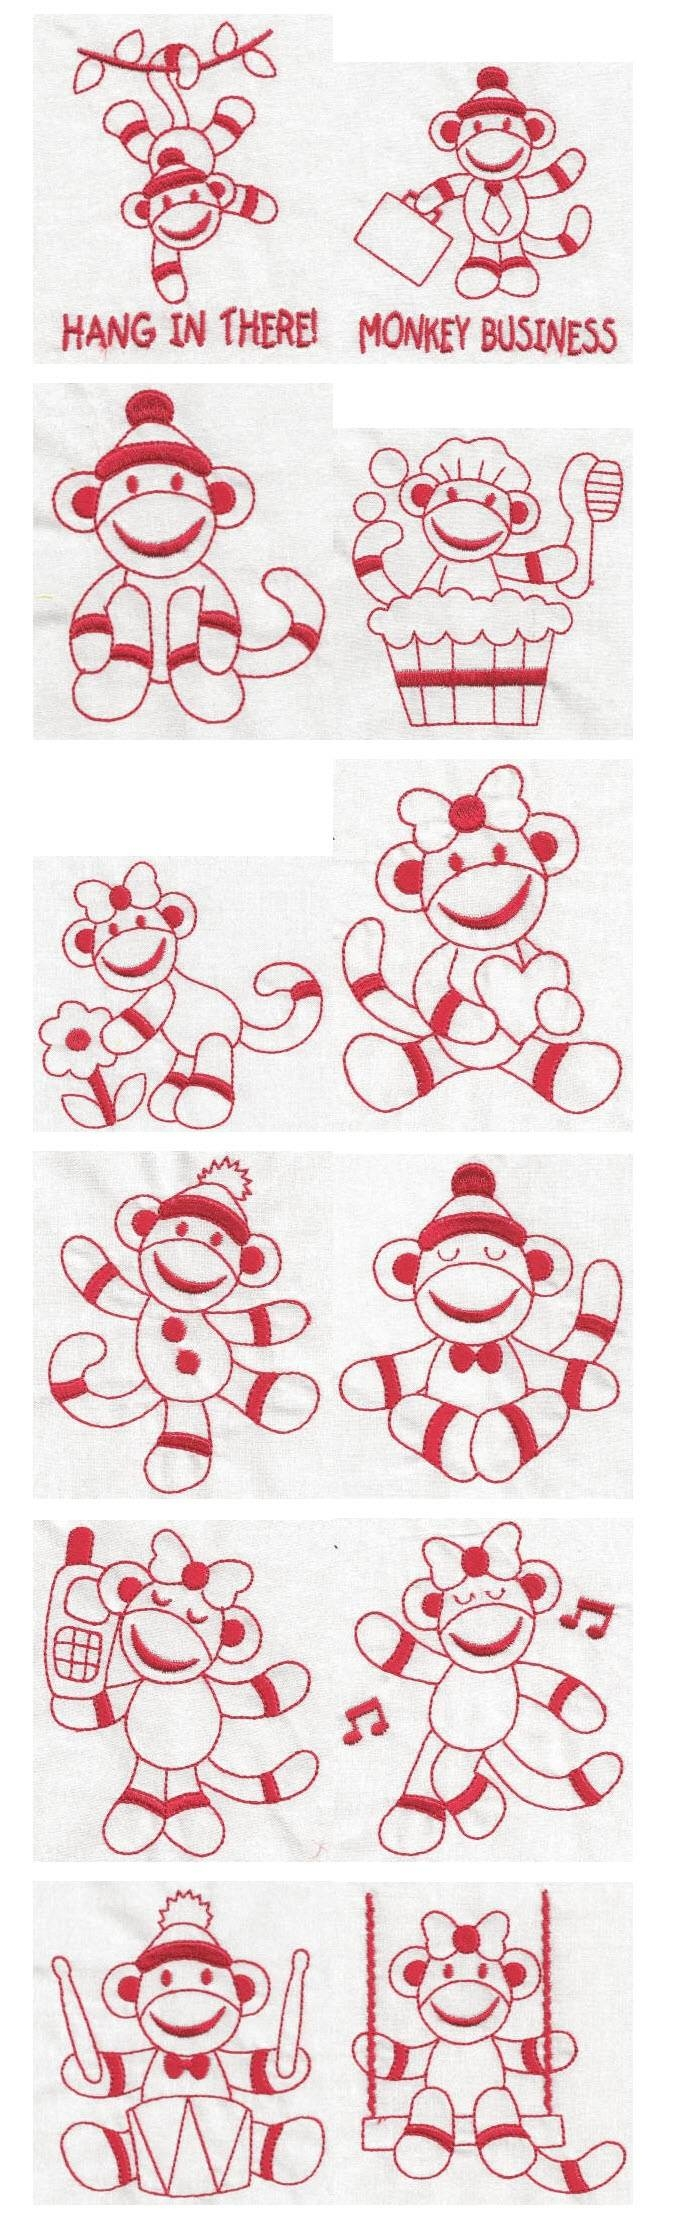 23 Best Sock Monkey Fill Stitch Images On Pinterest | Sock Monkeys Intended For Current Sock Monkey Wall Art (View 5 of 30)